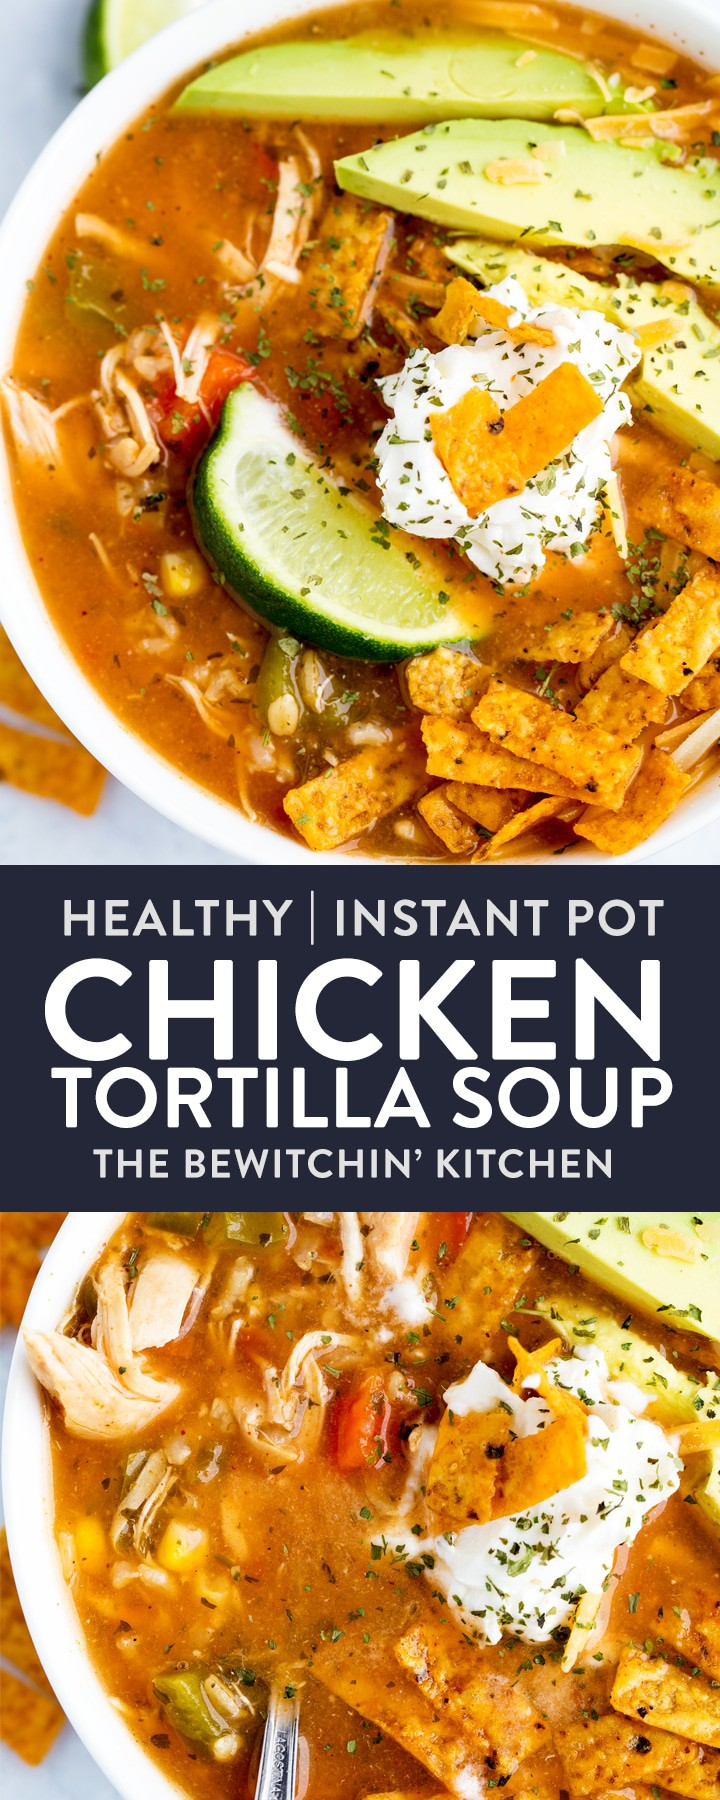 This Instant Pot Chicken Tortilla Soup is a quick and easy weeknight meal that takes no effort but is healthy, low calorie, and delicious. Easily made in the slow cooker or Crockpot as it's just a dump and go dinner idea. Want it whole30 or paleo? Easy, just omit the tortilla strips and rice and it's ready in 30 minutes! #thebewitchinkitchen #instantpotrecipes #cleaneatingrecipes #dumpandgo #chickentortillasoup #instantpotchickensoup #instantpotsoup #chickenandricesoup #healthyrecipes #healthysouprecipes #21dayfixrecipes #80dayobsessionrecipes #dietrecipes #easyhealthyrecipes